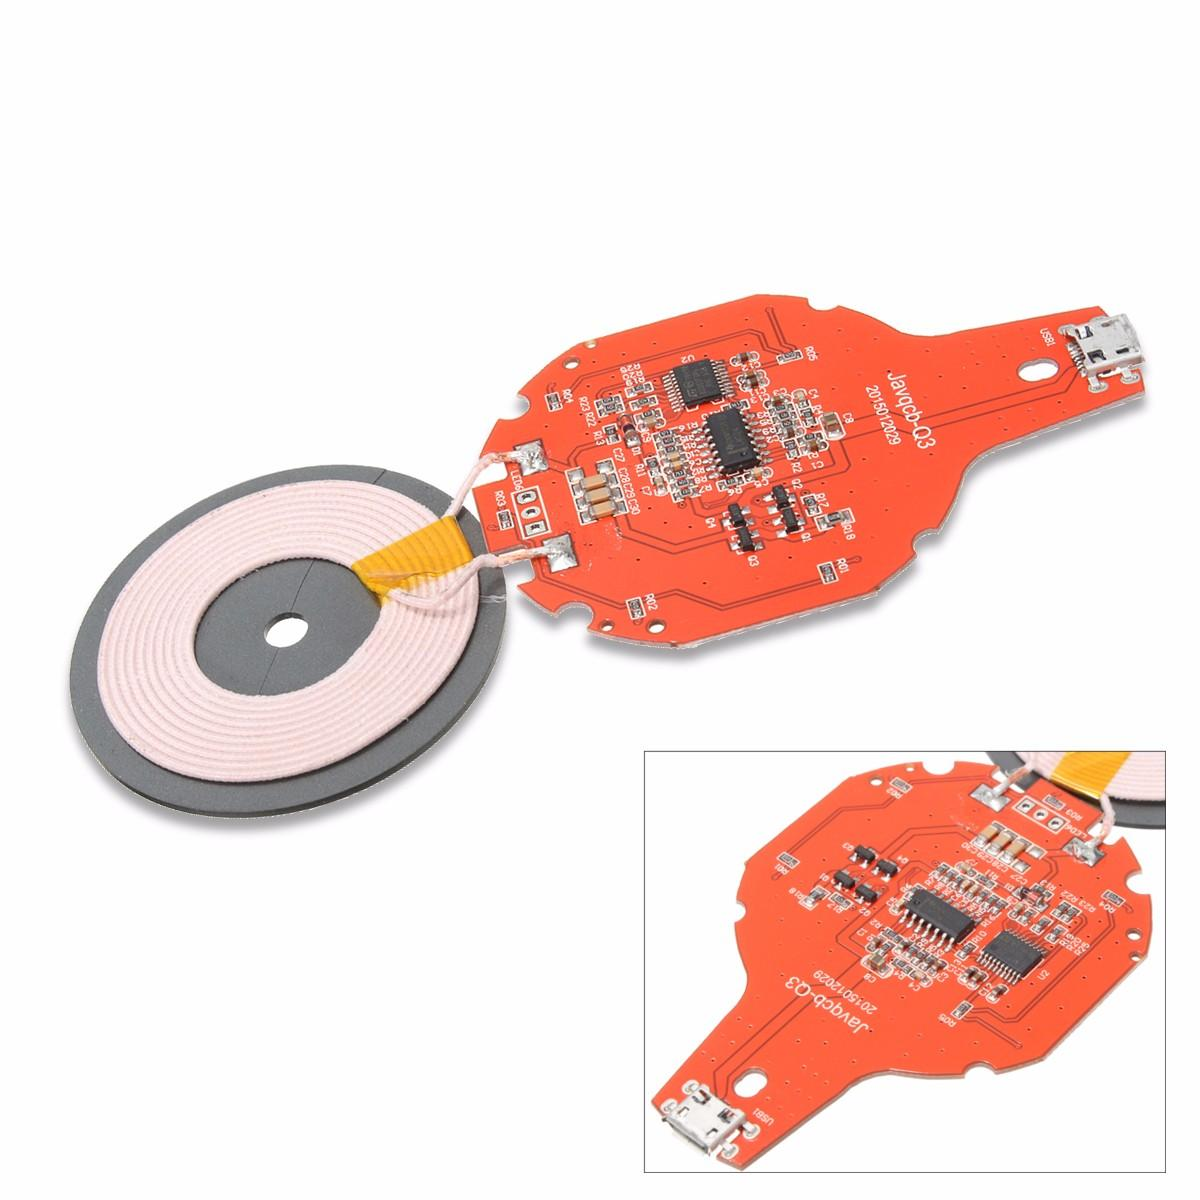 Qi Wireless Charger Pcba Circuit Board Coil Charging Micro Mobile Diagram Usb Port Diy